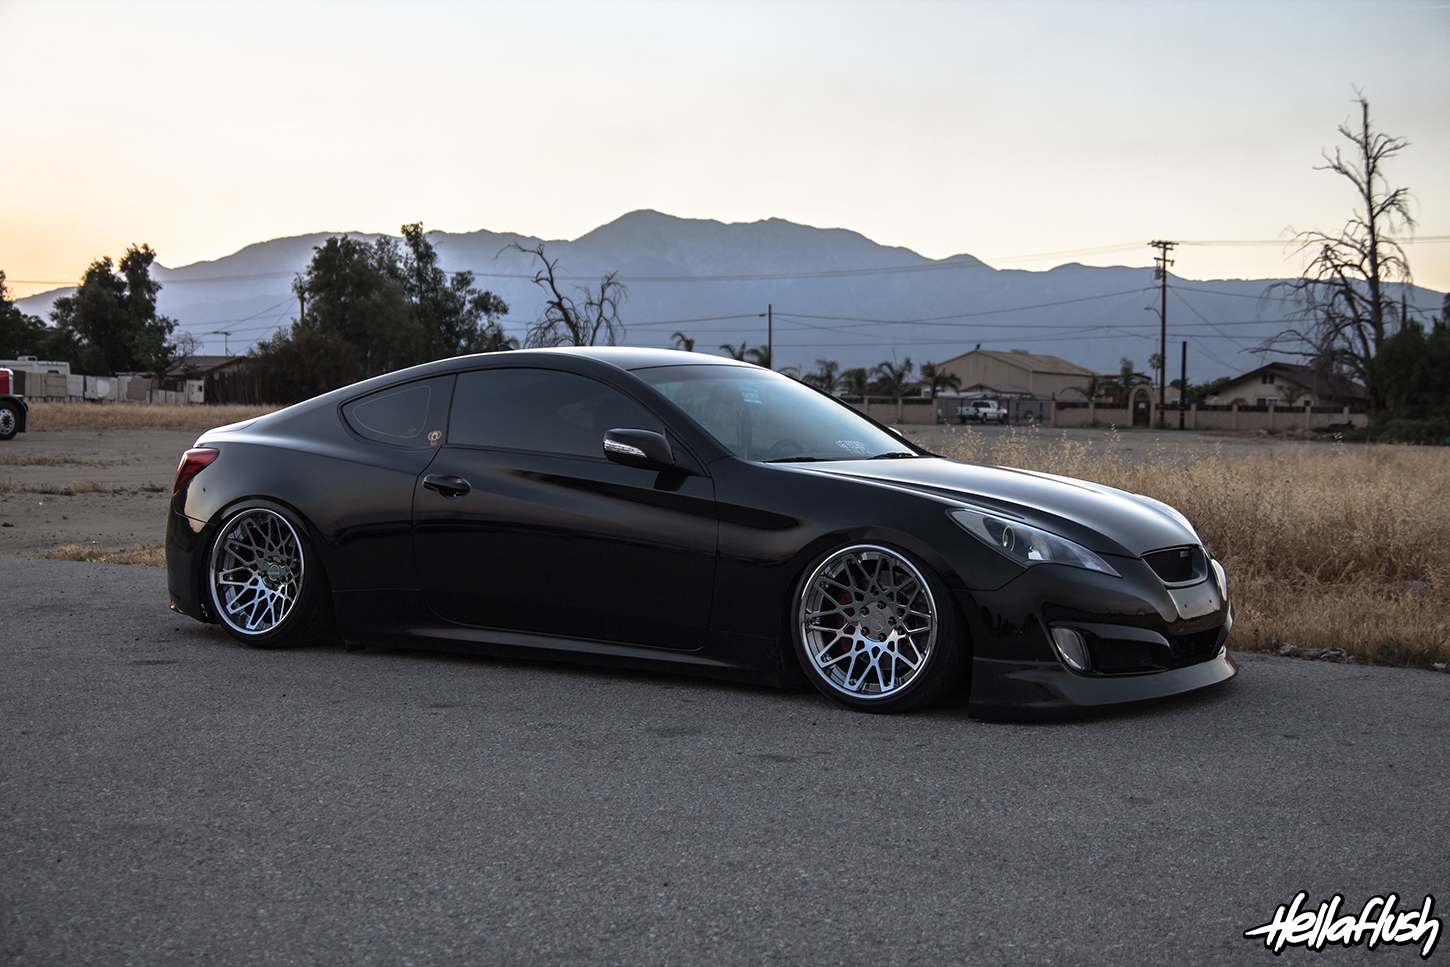 Big Rick S Slammed Genesis Coupe Feature W More Goodies